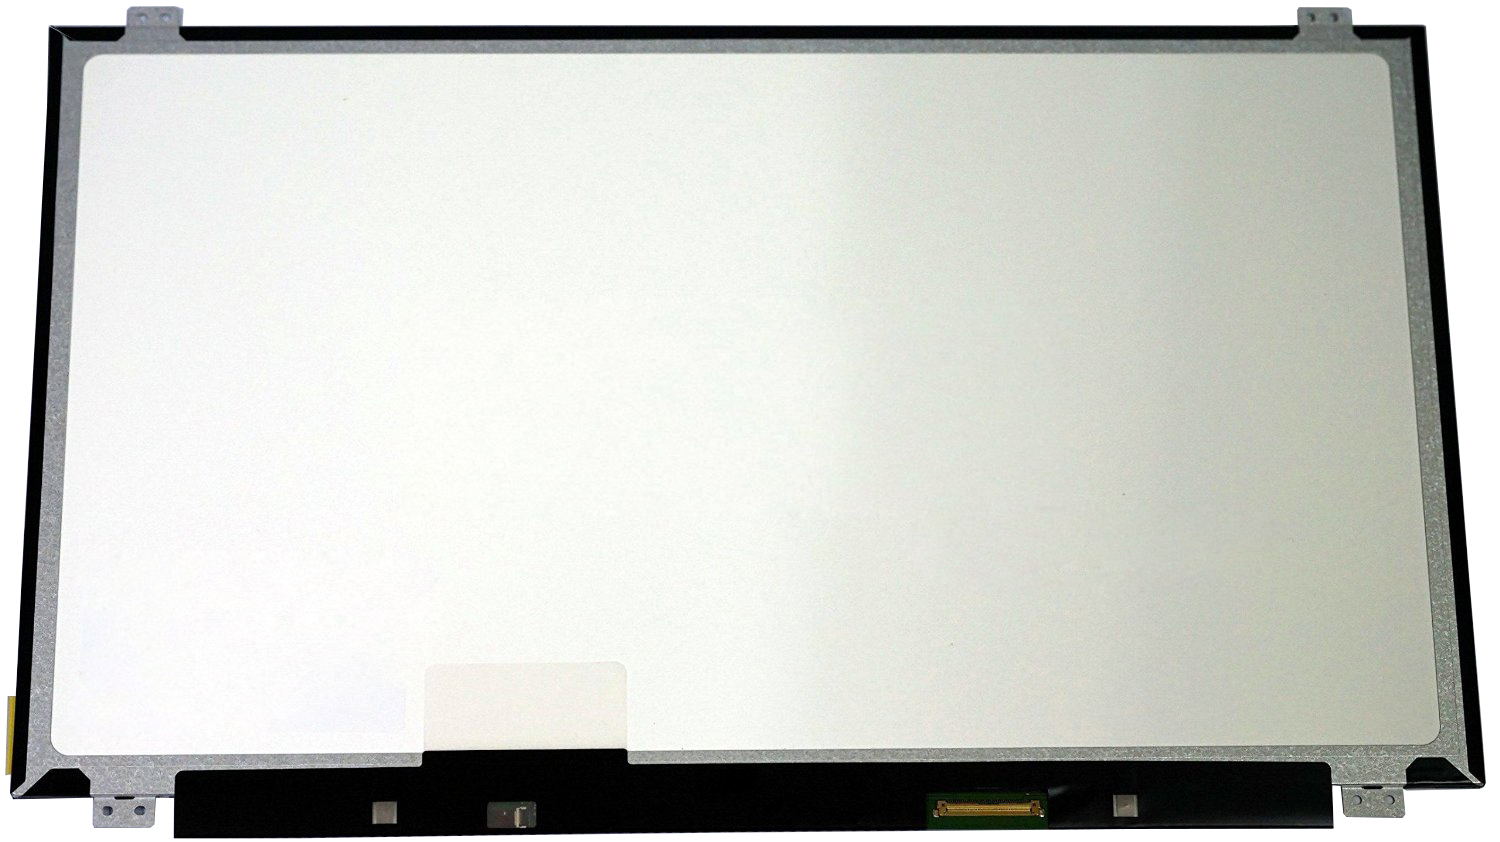 QuYing Laptop LCD Screen for ACER ASPIRE E5-552G E5-532 ES1-521 ES1-531 E5-574 ES1-571 E1-522 SERIES samsung rs 552 nruasl